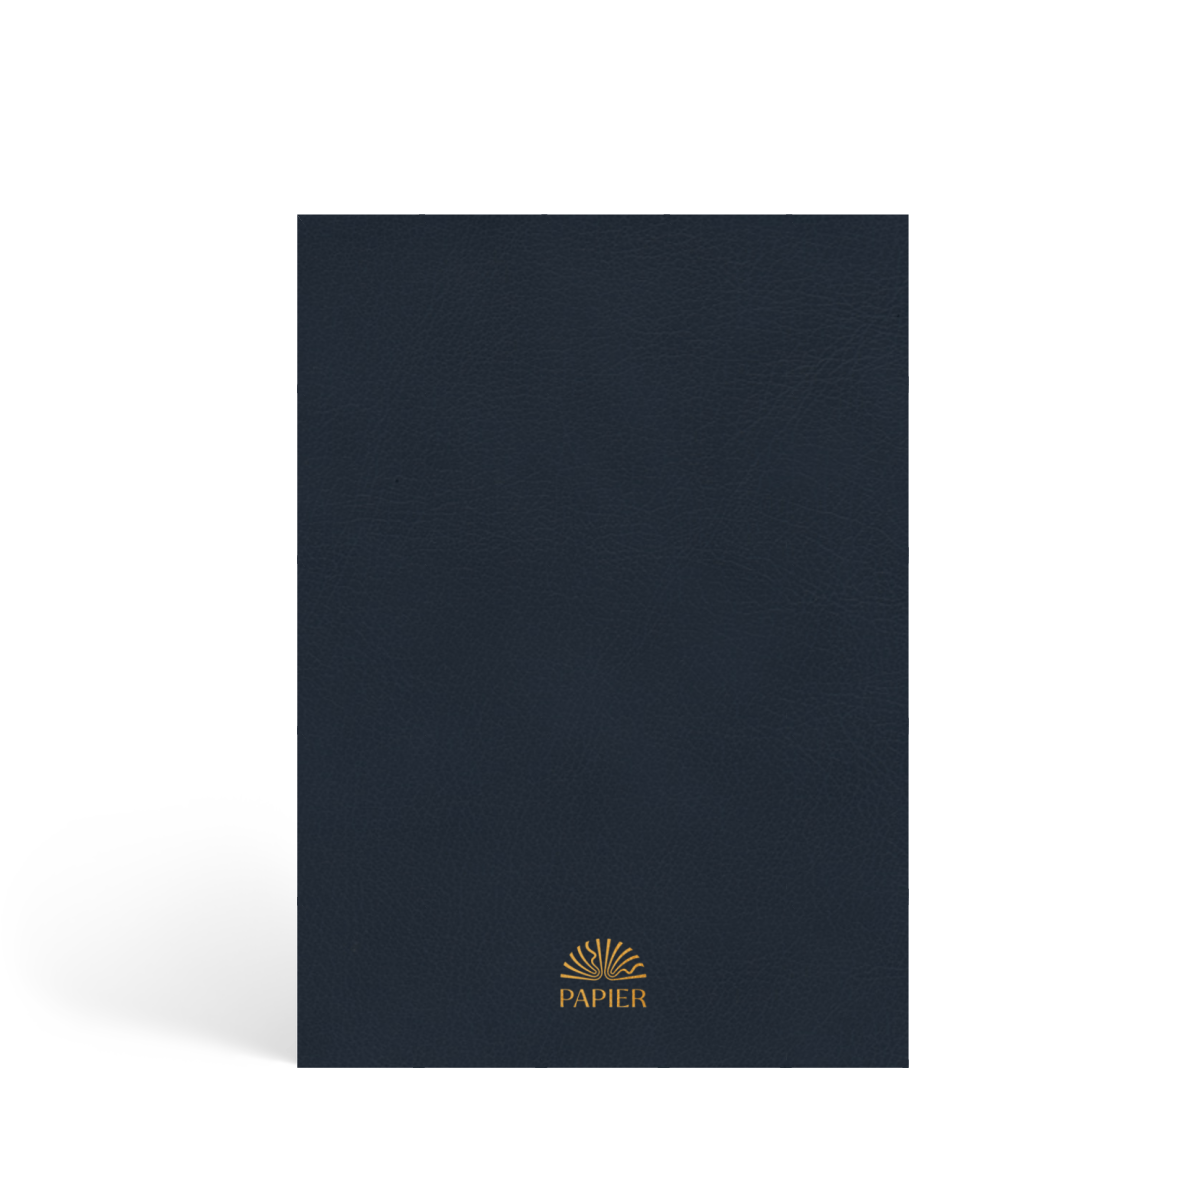 Https%3a%2f%2fwww.papier.com%2fproduct image%2f95514%2f5%2fnavy monogram 23944 back 1573233062.png?ixlib=rb 1.1